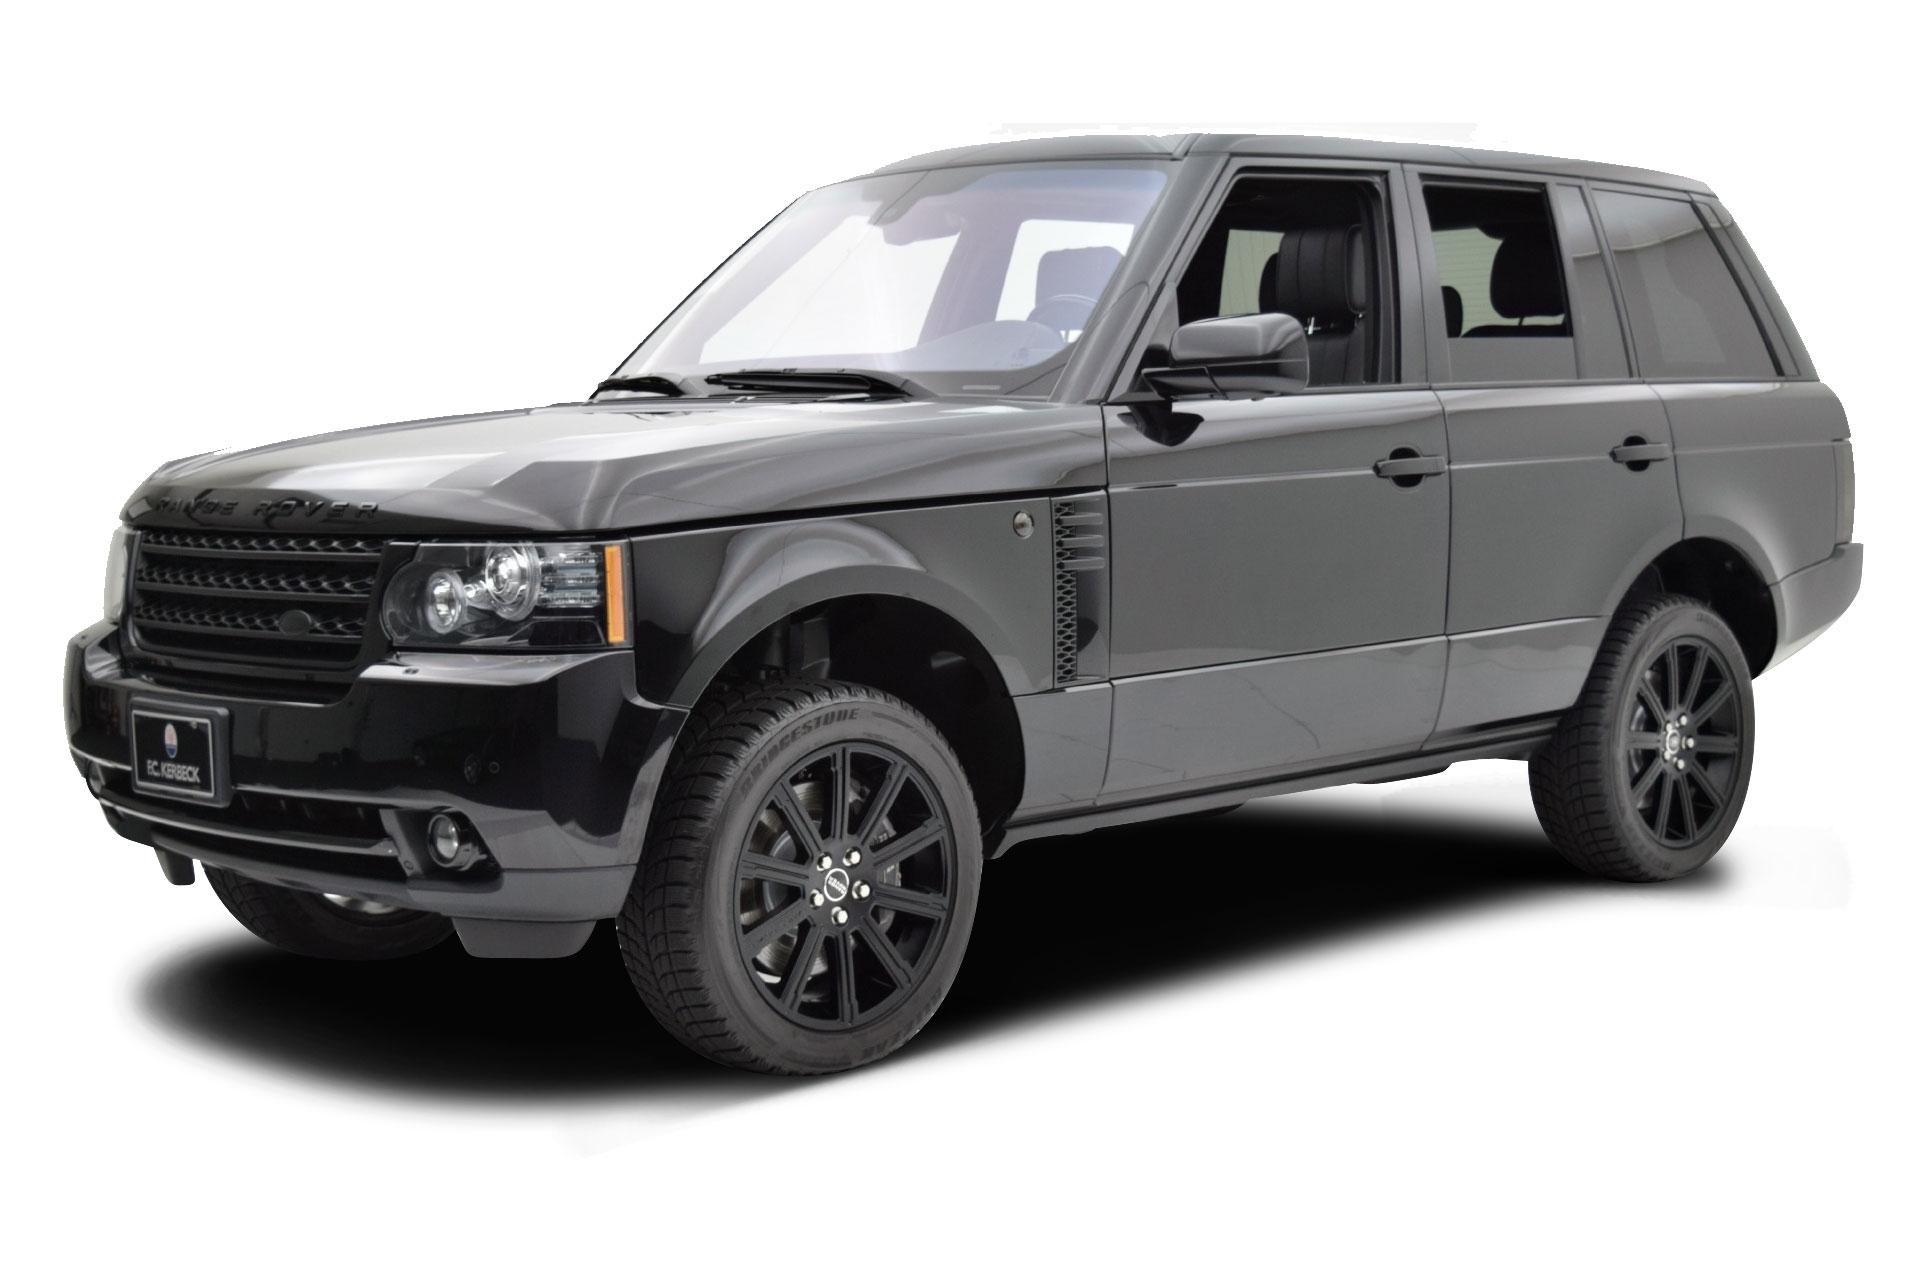 2012 Land Rover Range Rover SC Supercharged